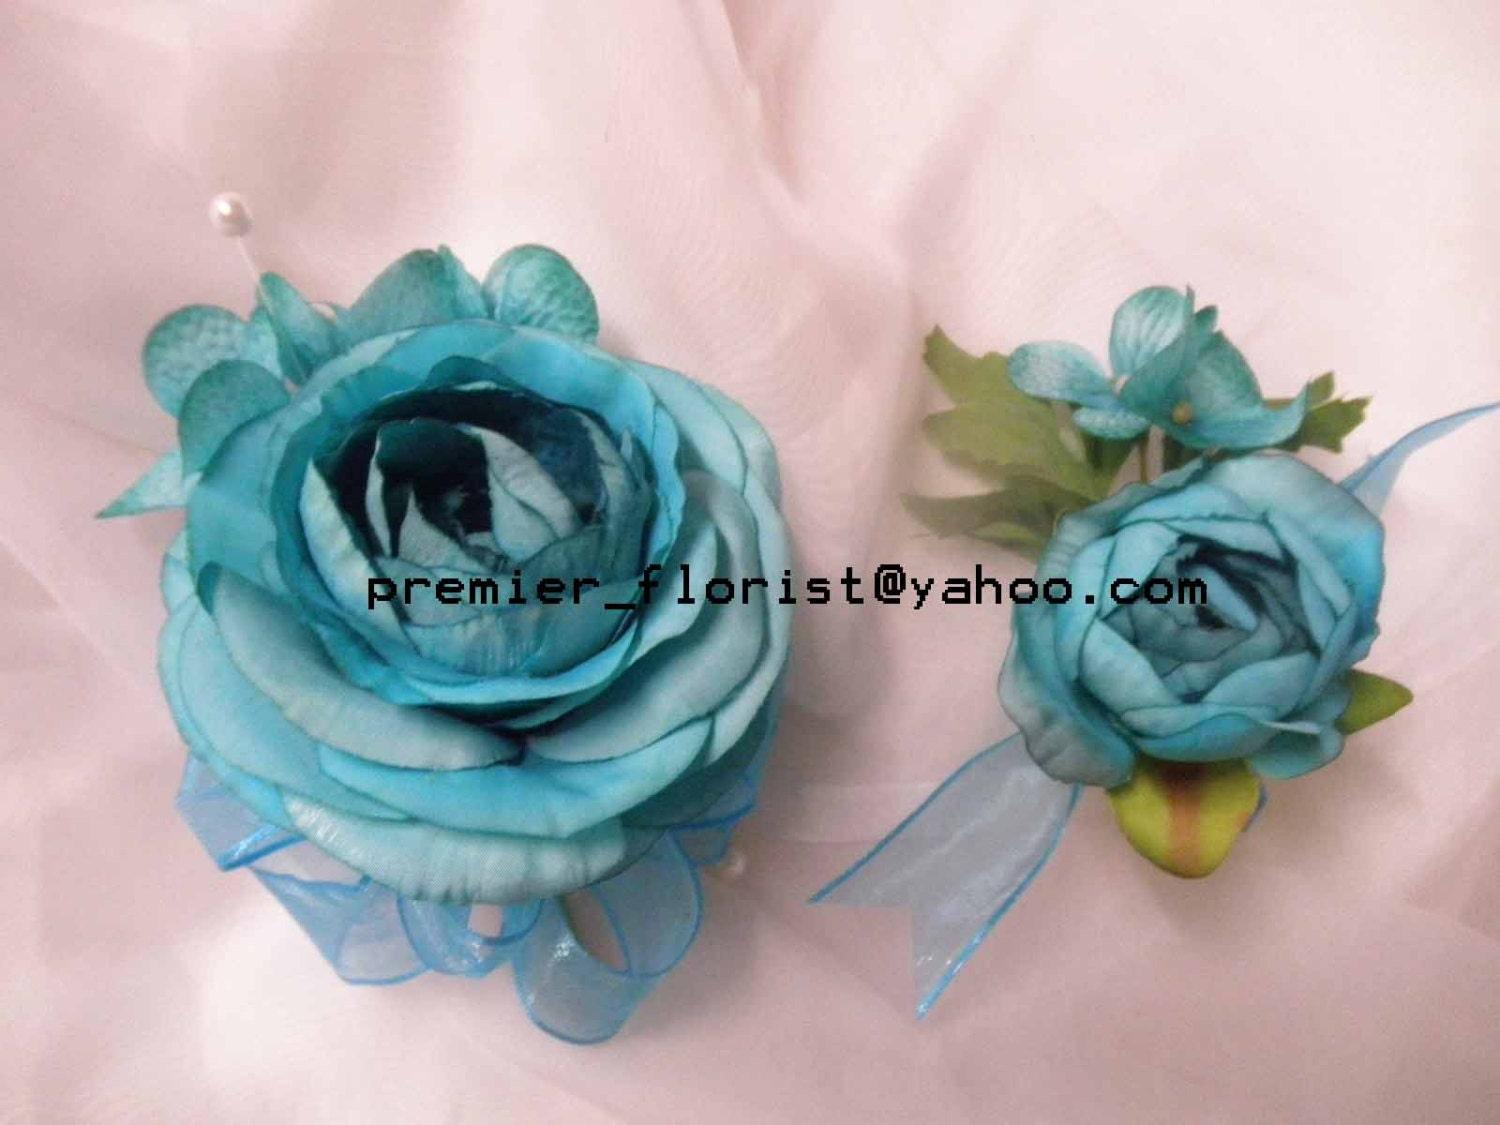 4 Pc Set Of Ranunculus Corsage Or Boutonniere Turquoise Teal Silk